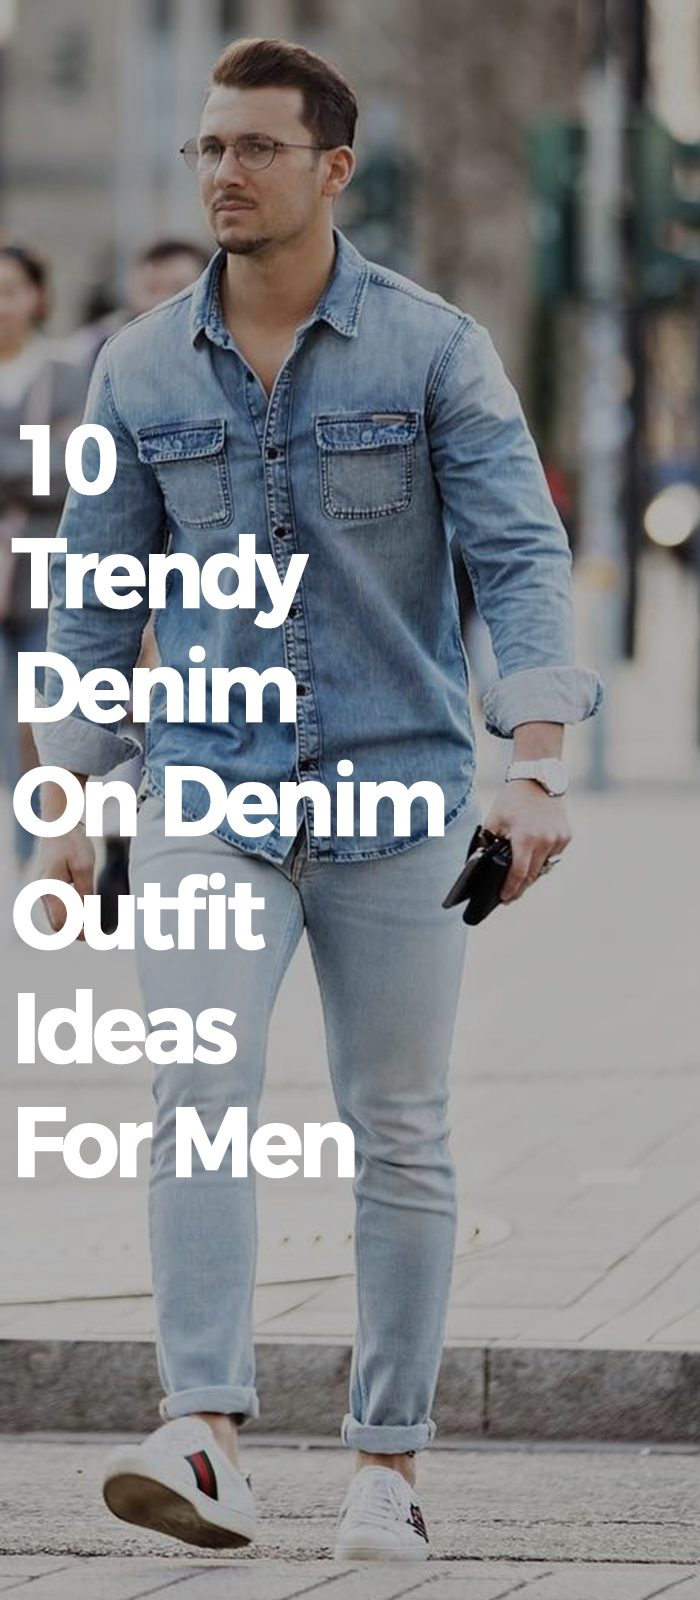 10 Trendy Denim On Denim Outfit Ideas For Men